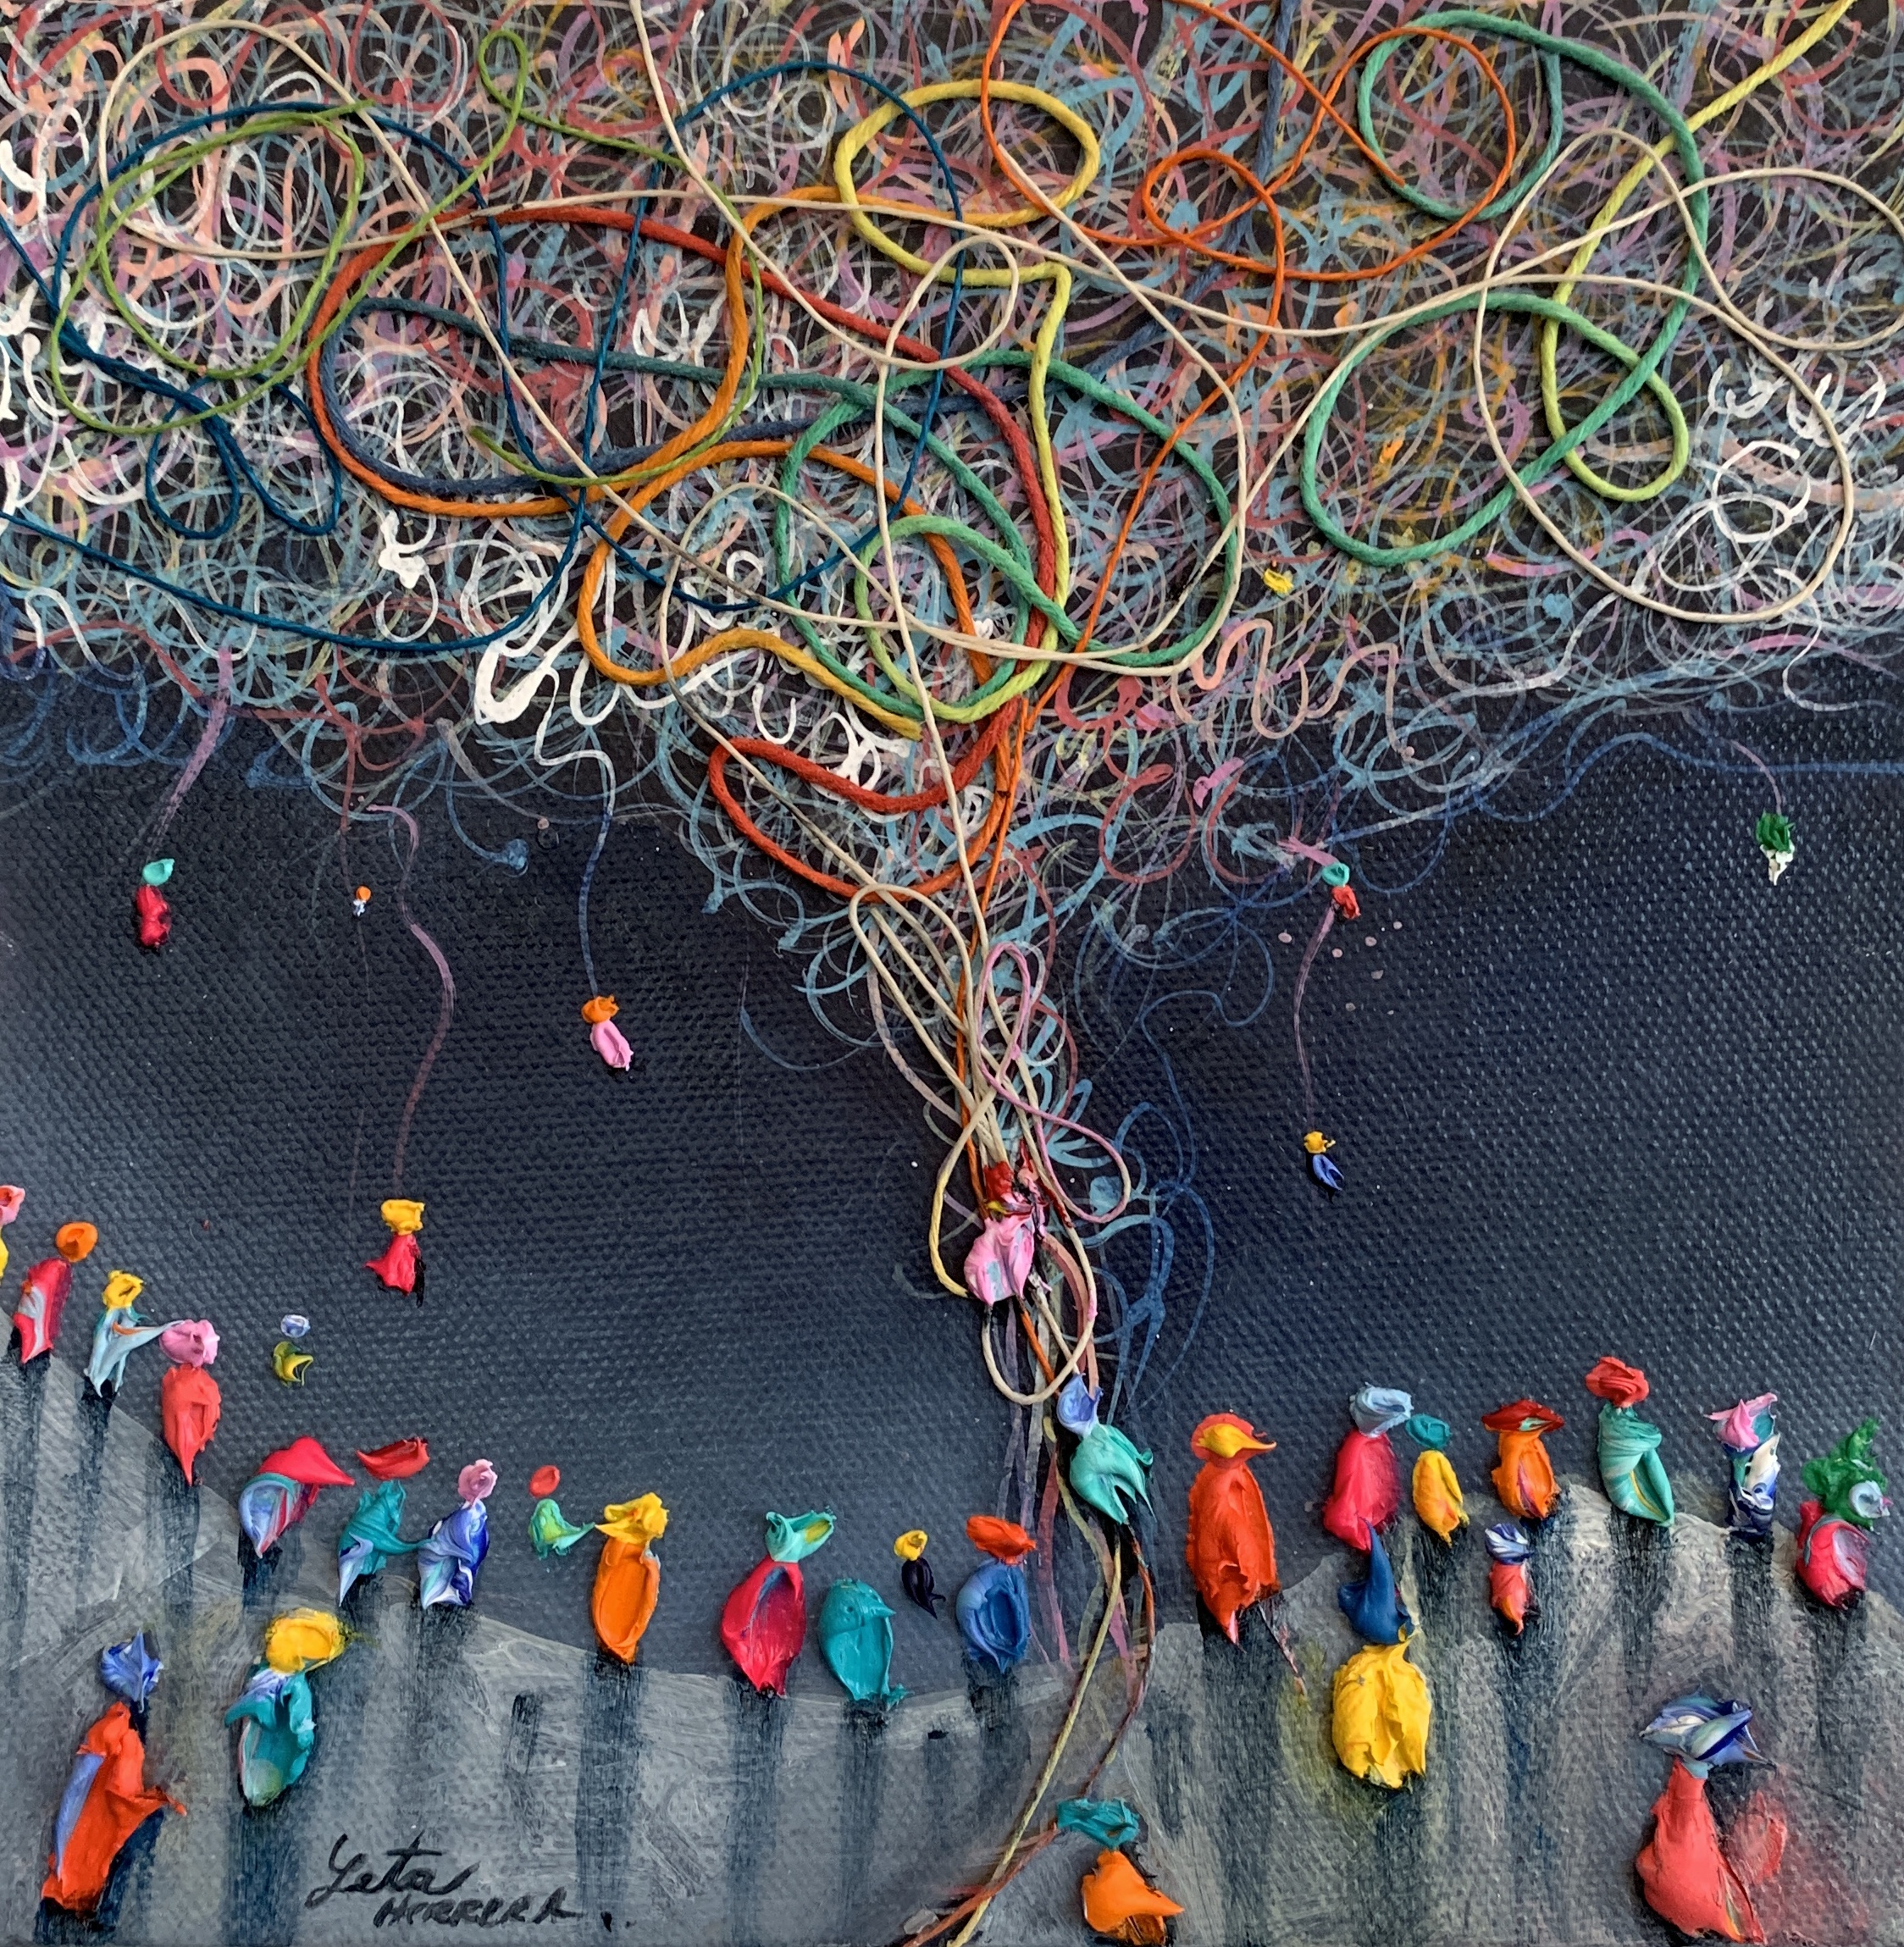 Hanging in There, 2019 - SOLD